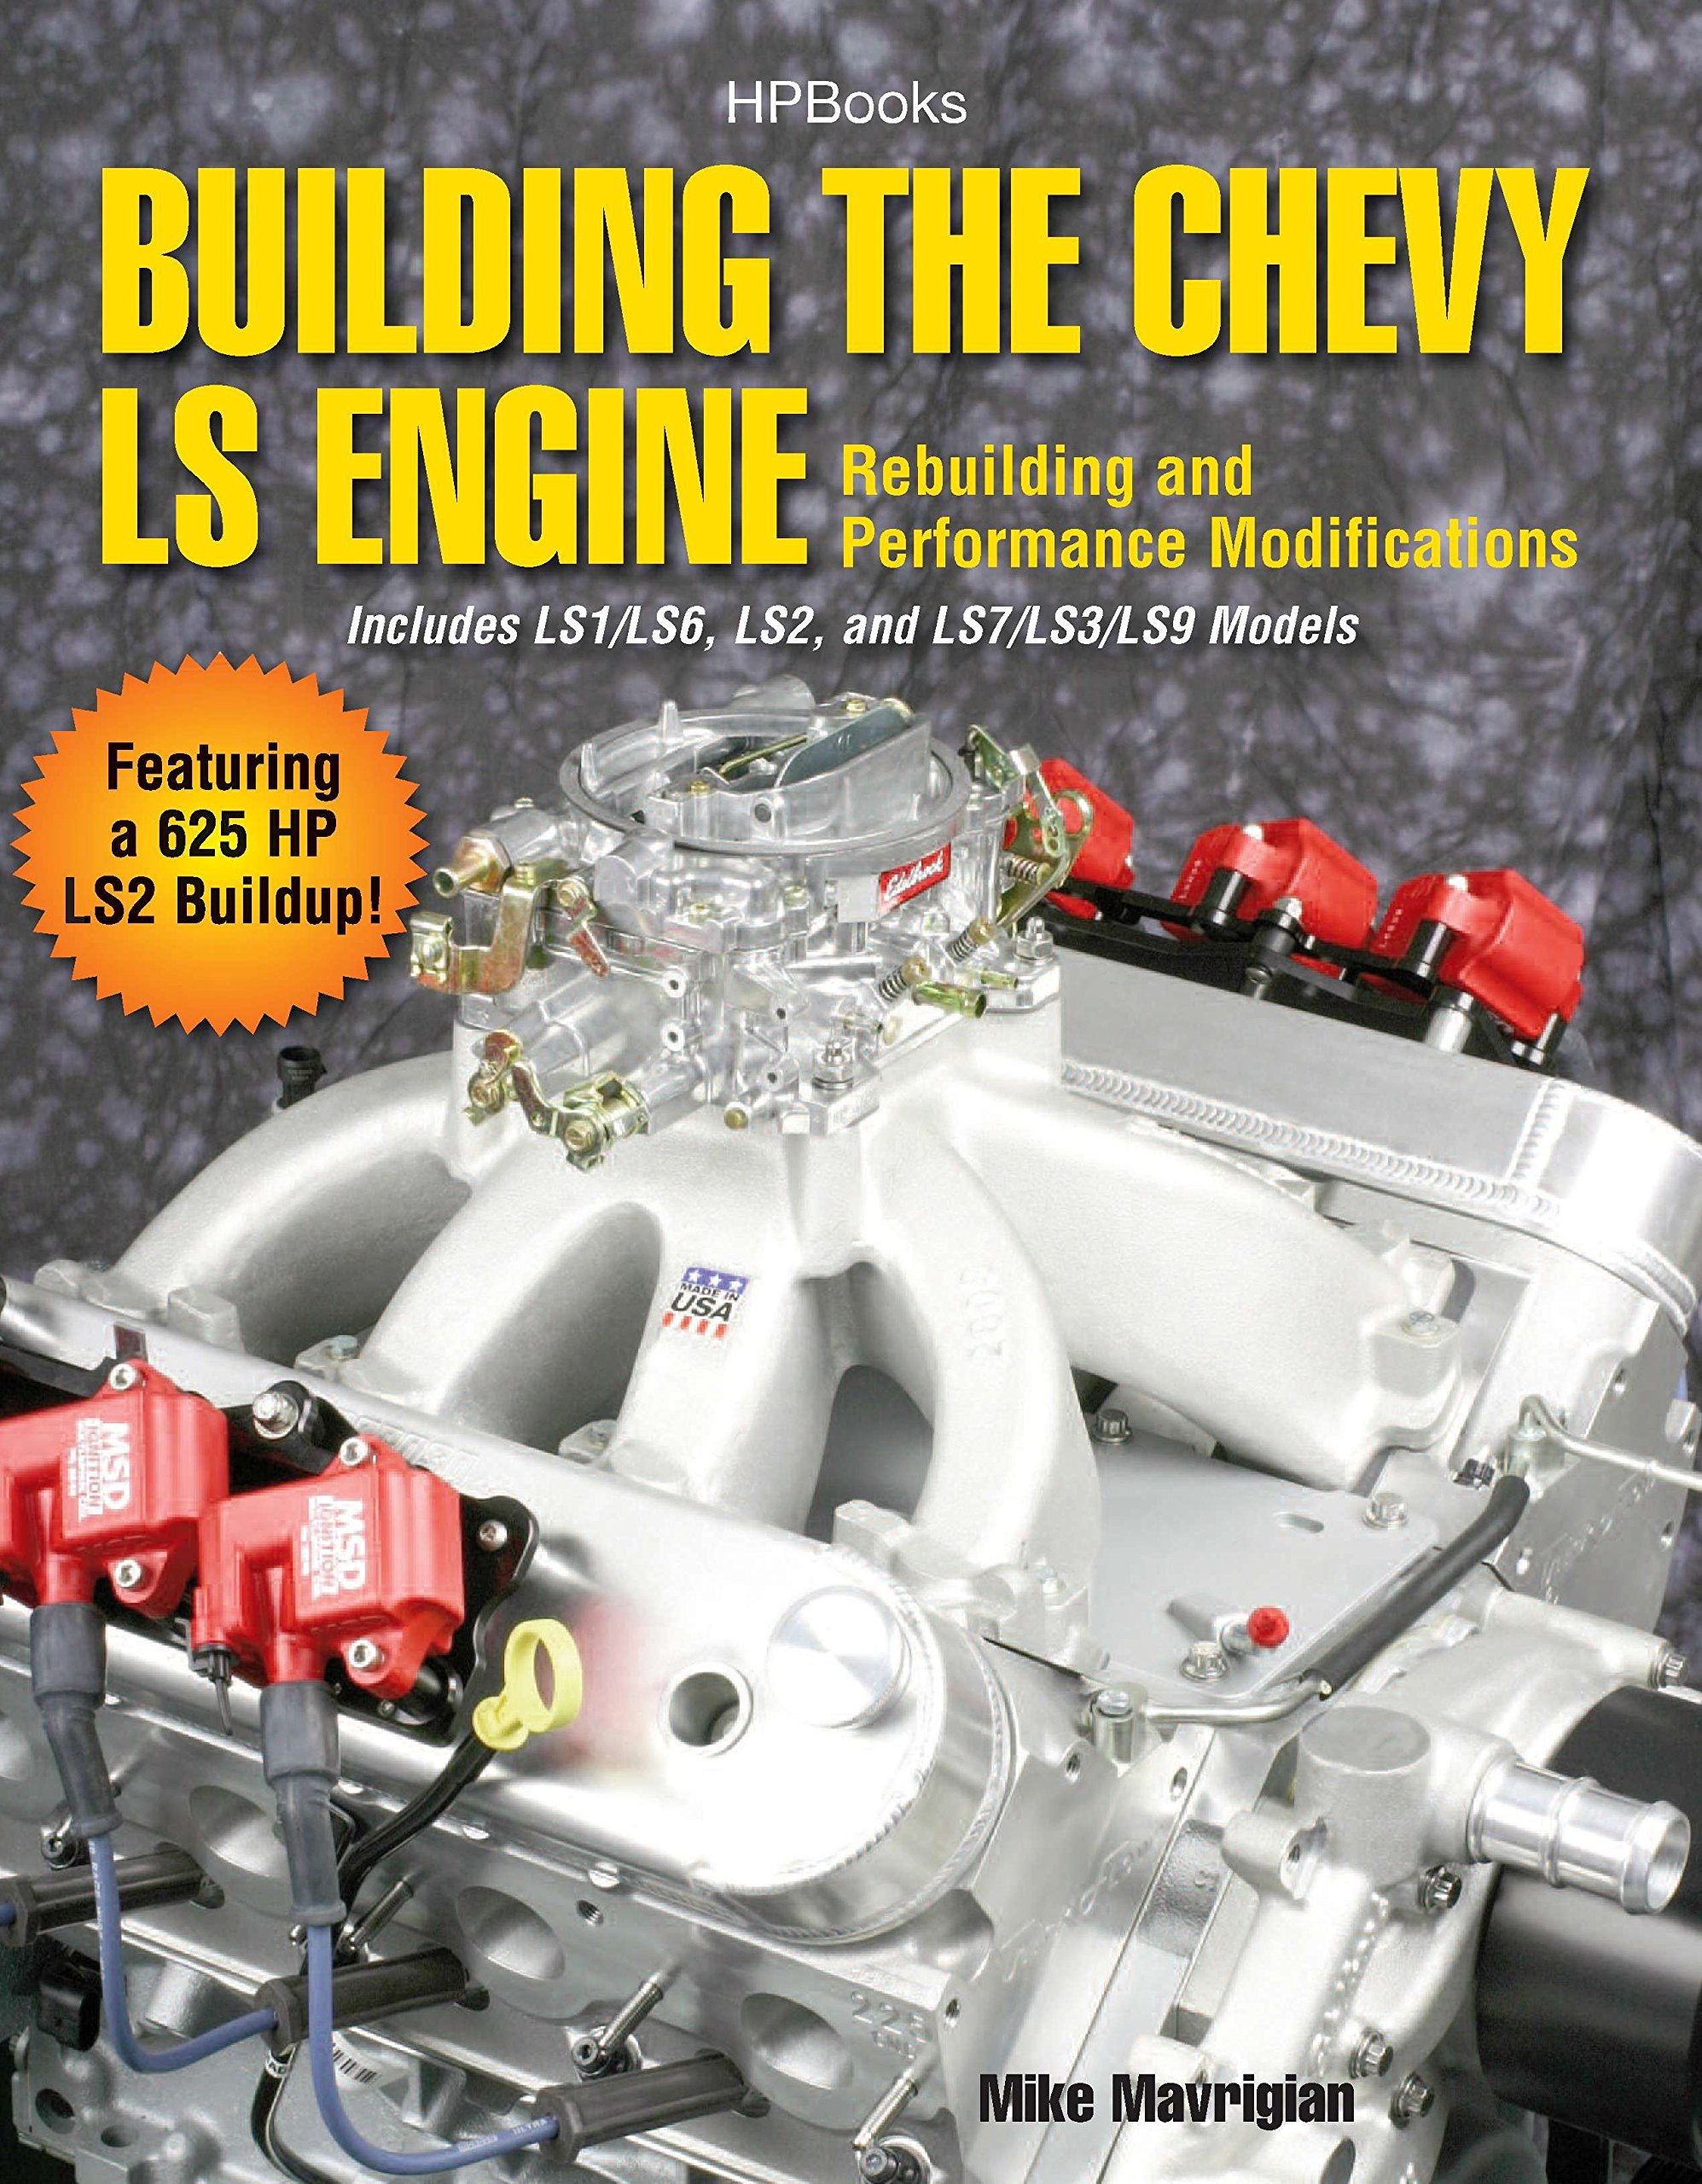 Building the Chevy LS Engine HP1559: Rebuilding and